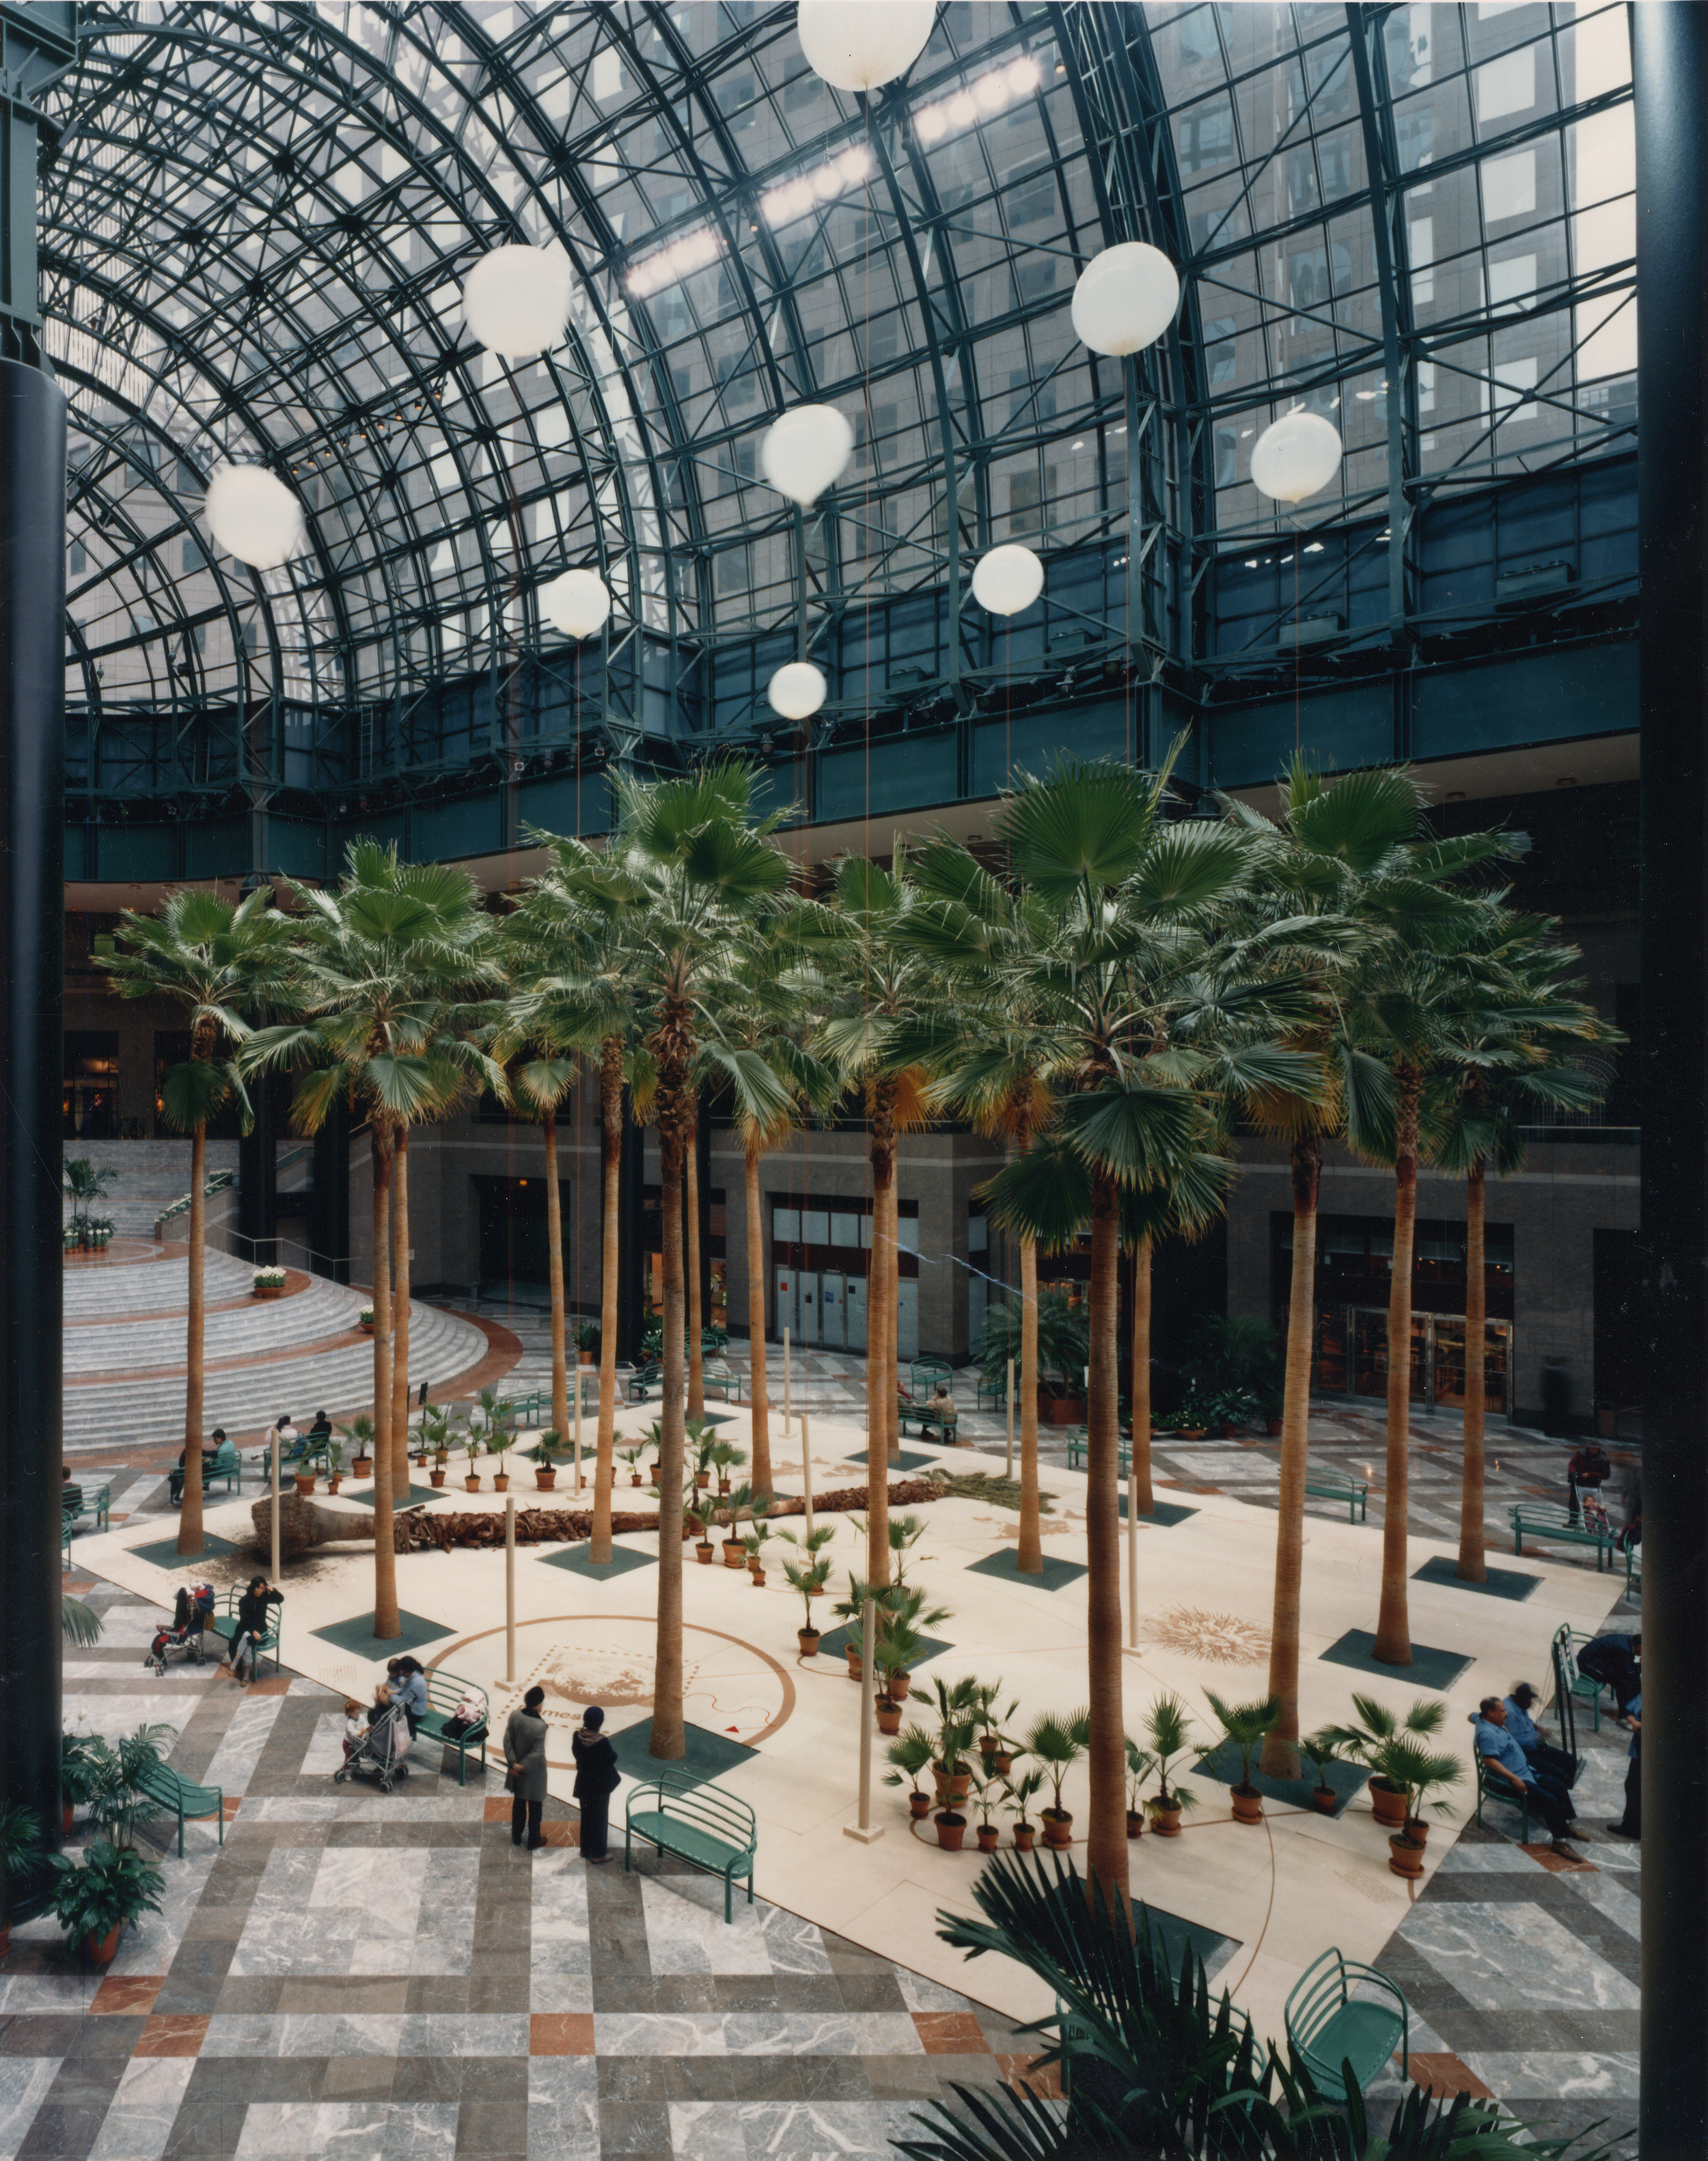 BA_Winter Garden_Photo 2.jpg